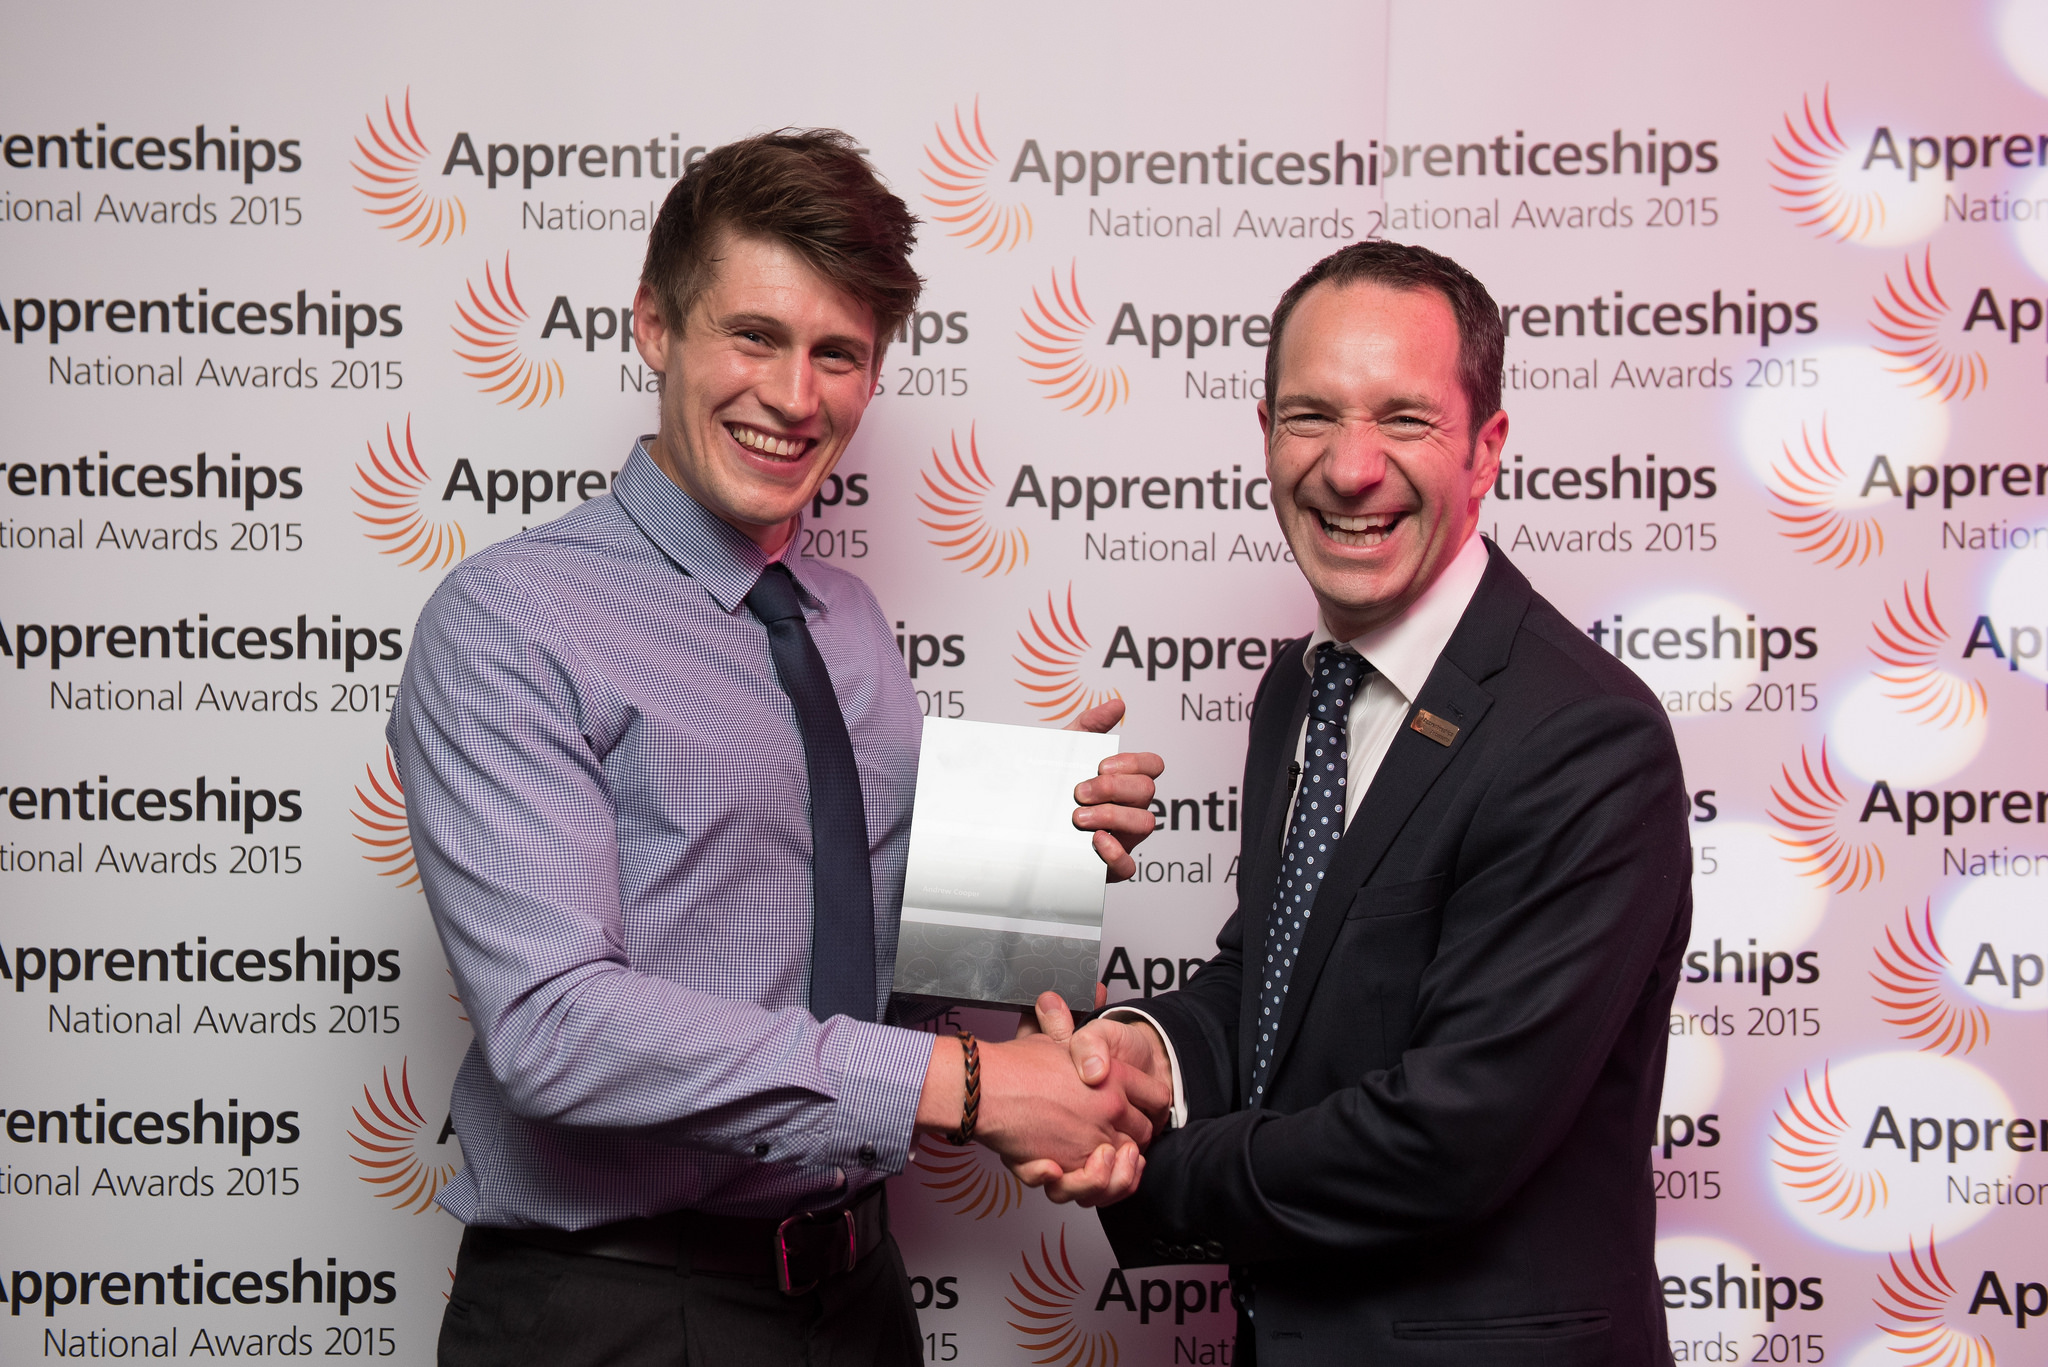 (L-R) Andrew Cooper, level four, GKN Aerospace, HC : The Nuclear Decommissioning Site Licence Companies Award for the Higher Apprentice of the Year with guest presenter Nigel Fenn, South West Ambassadors Network